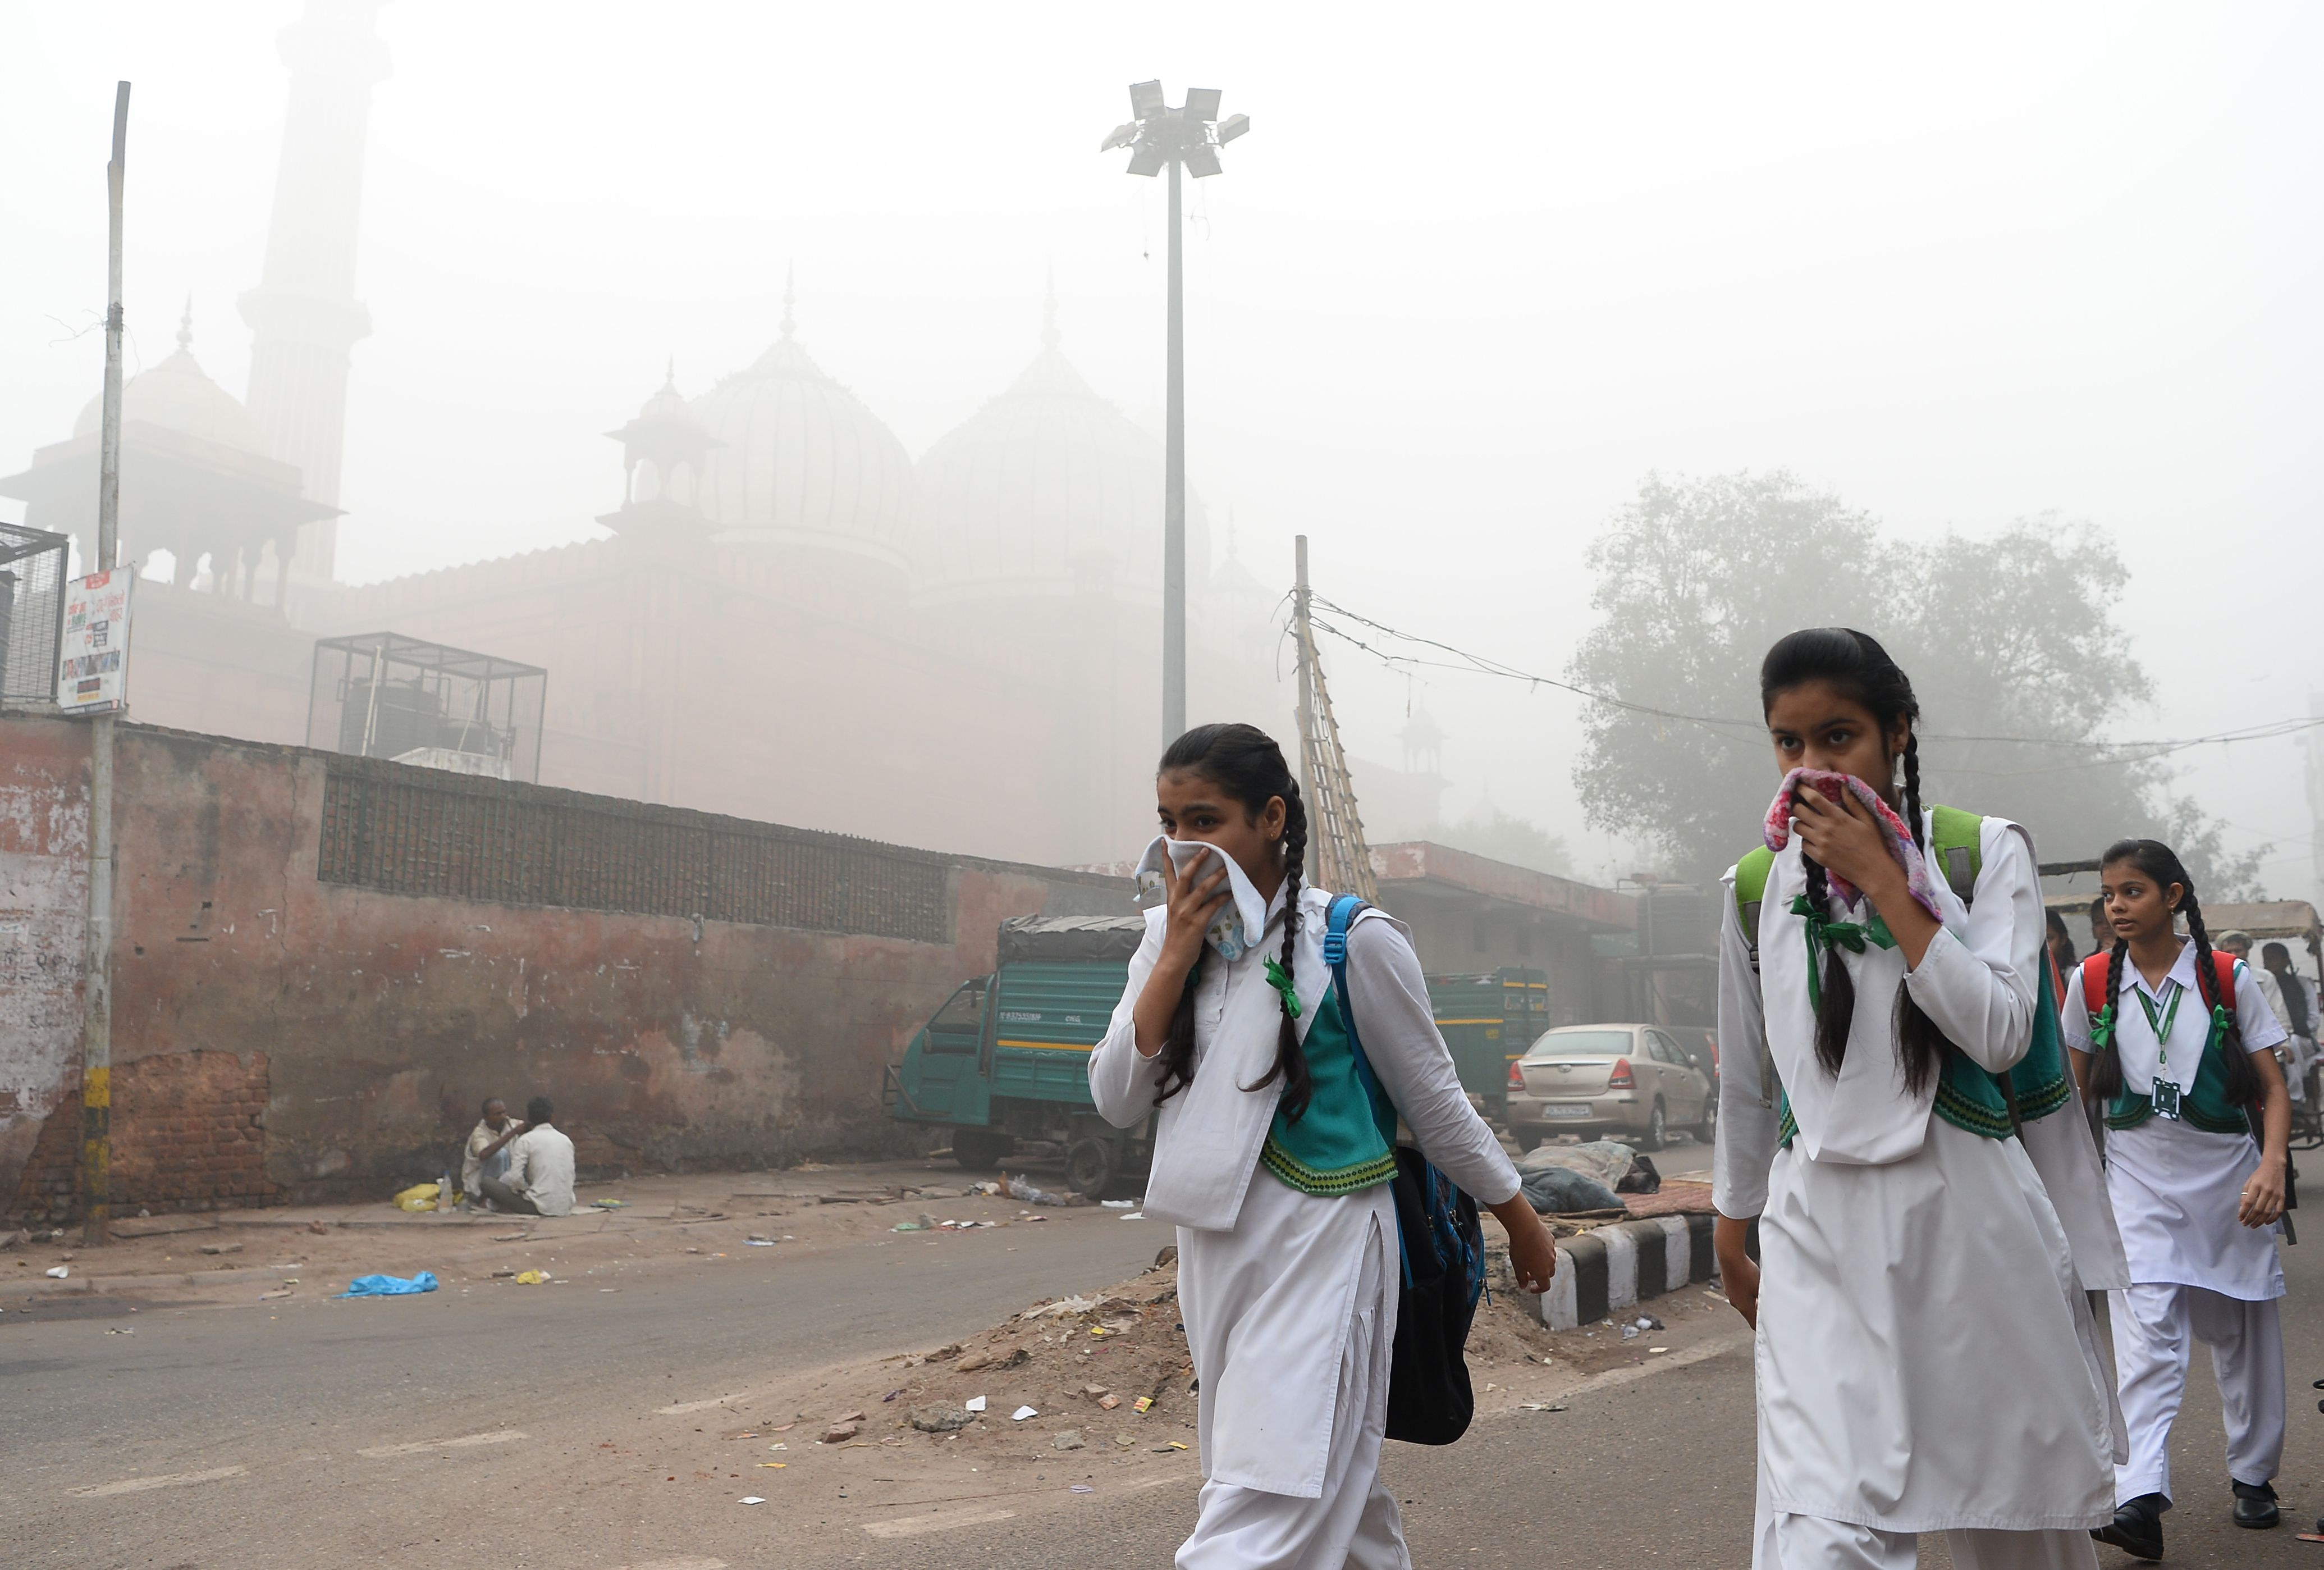 The house just passed a sweeping abortion funding ban heres what it does vox - Delhi S Off The Charts Smog Explained